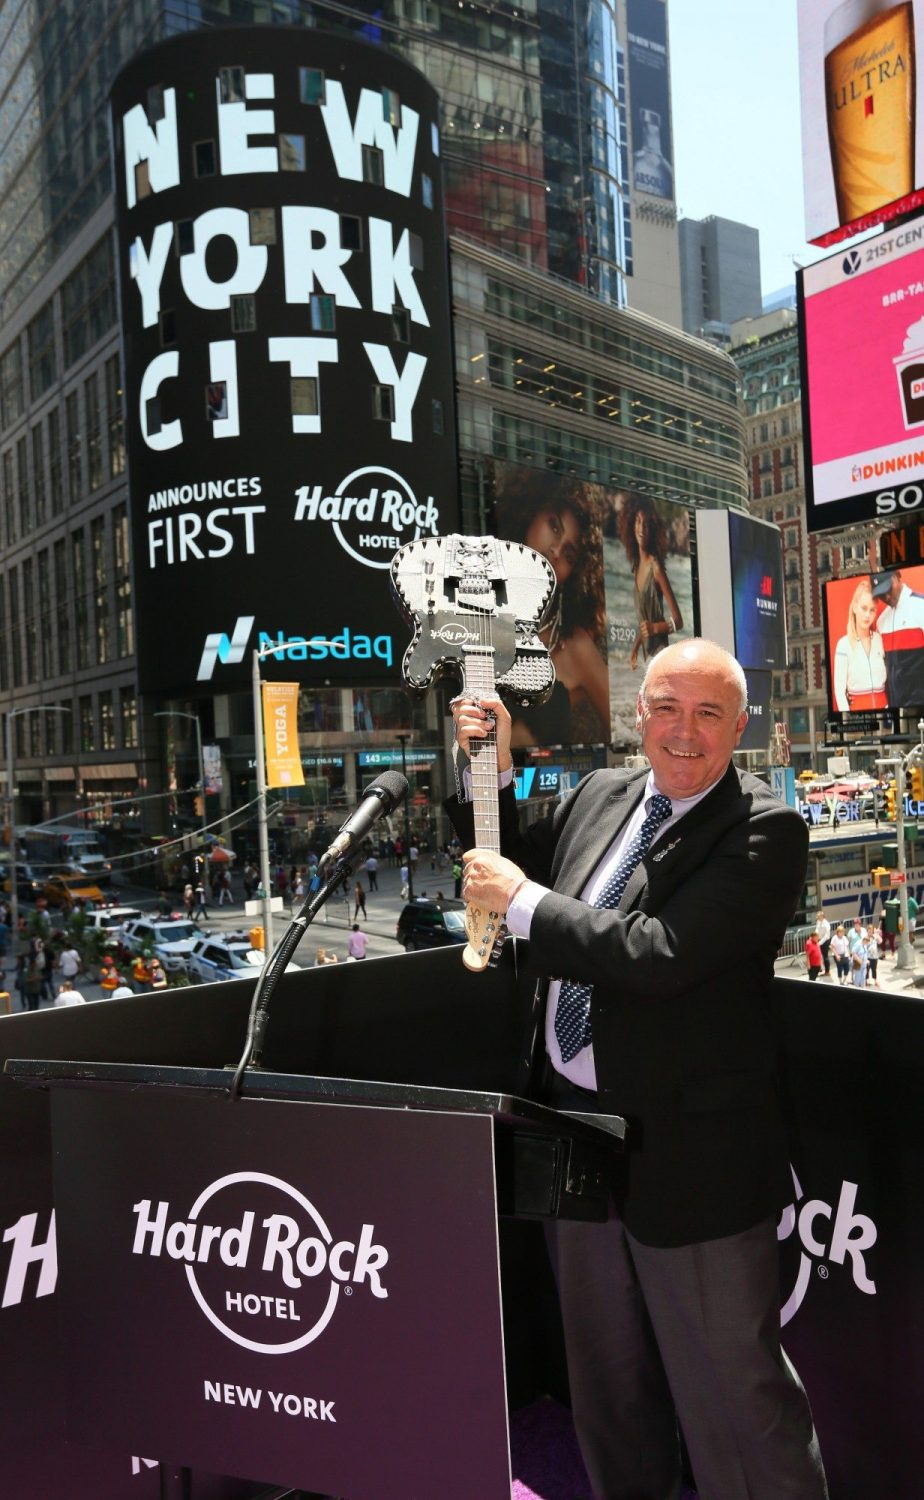 Hard Rock Hotel New York coming to NYC in Spring 2019